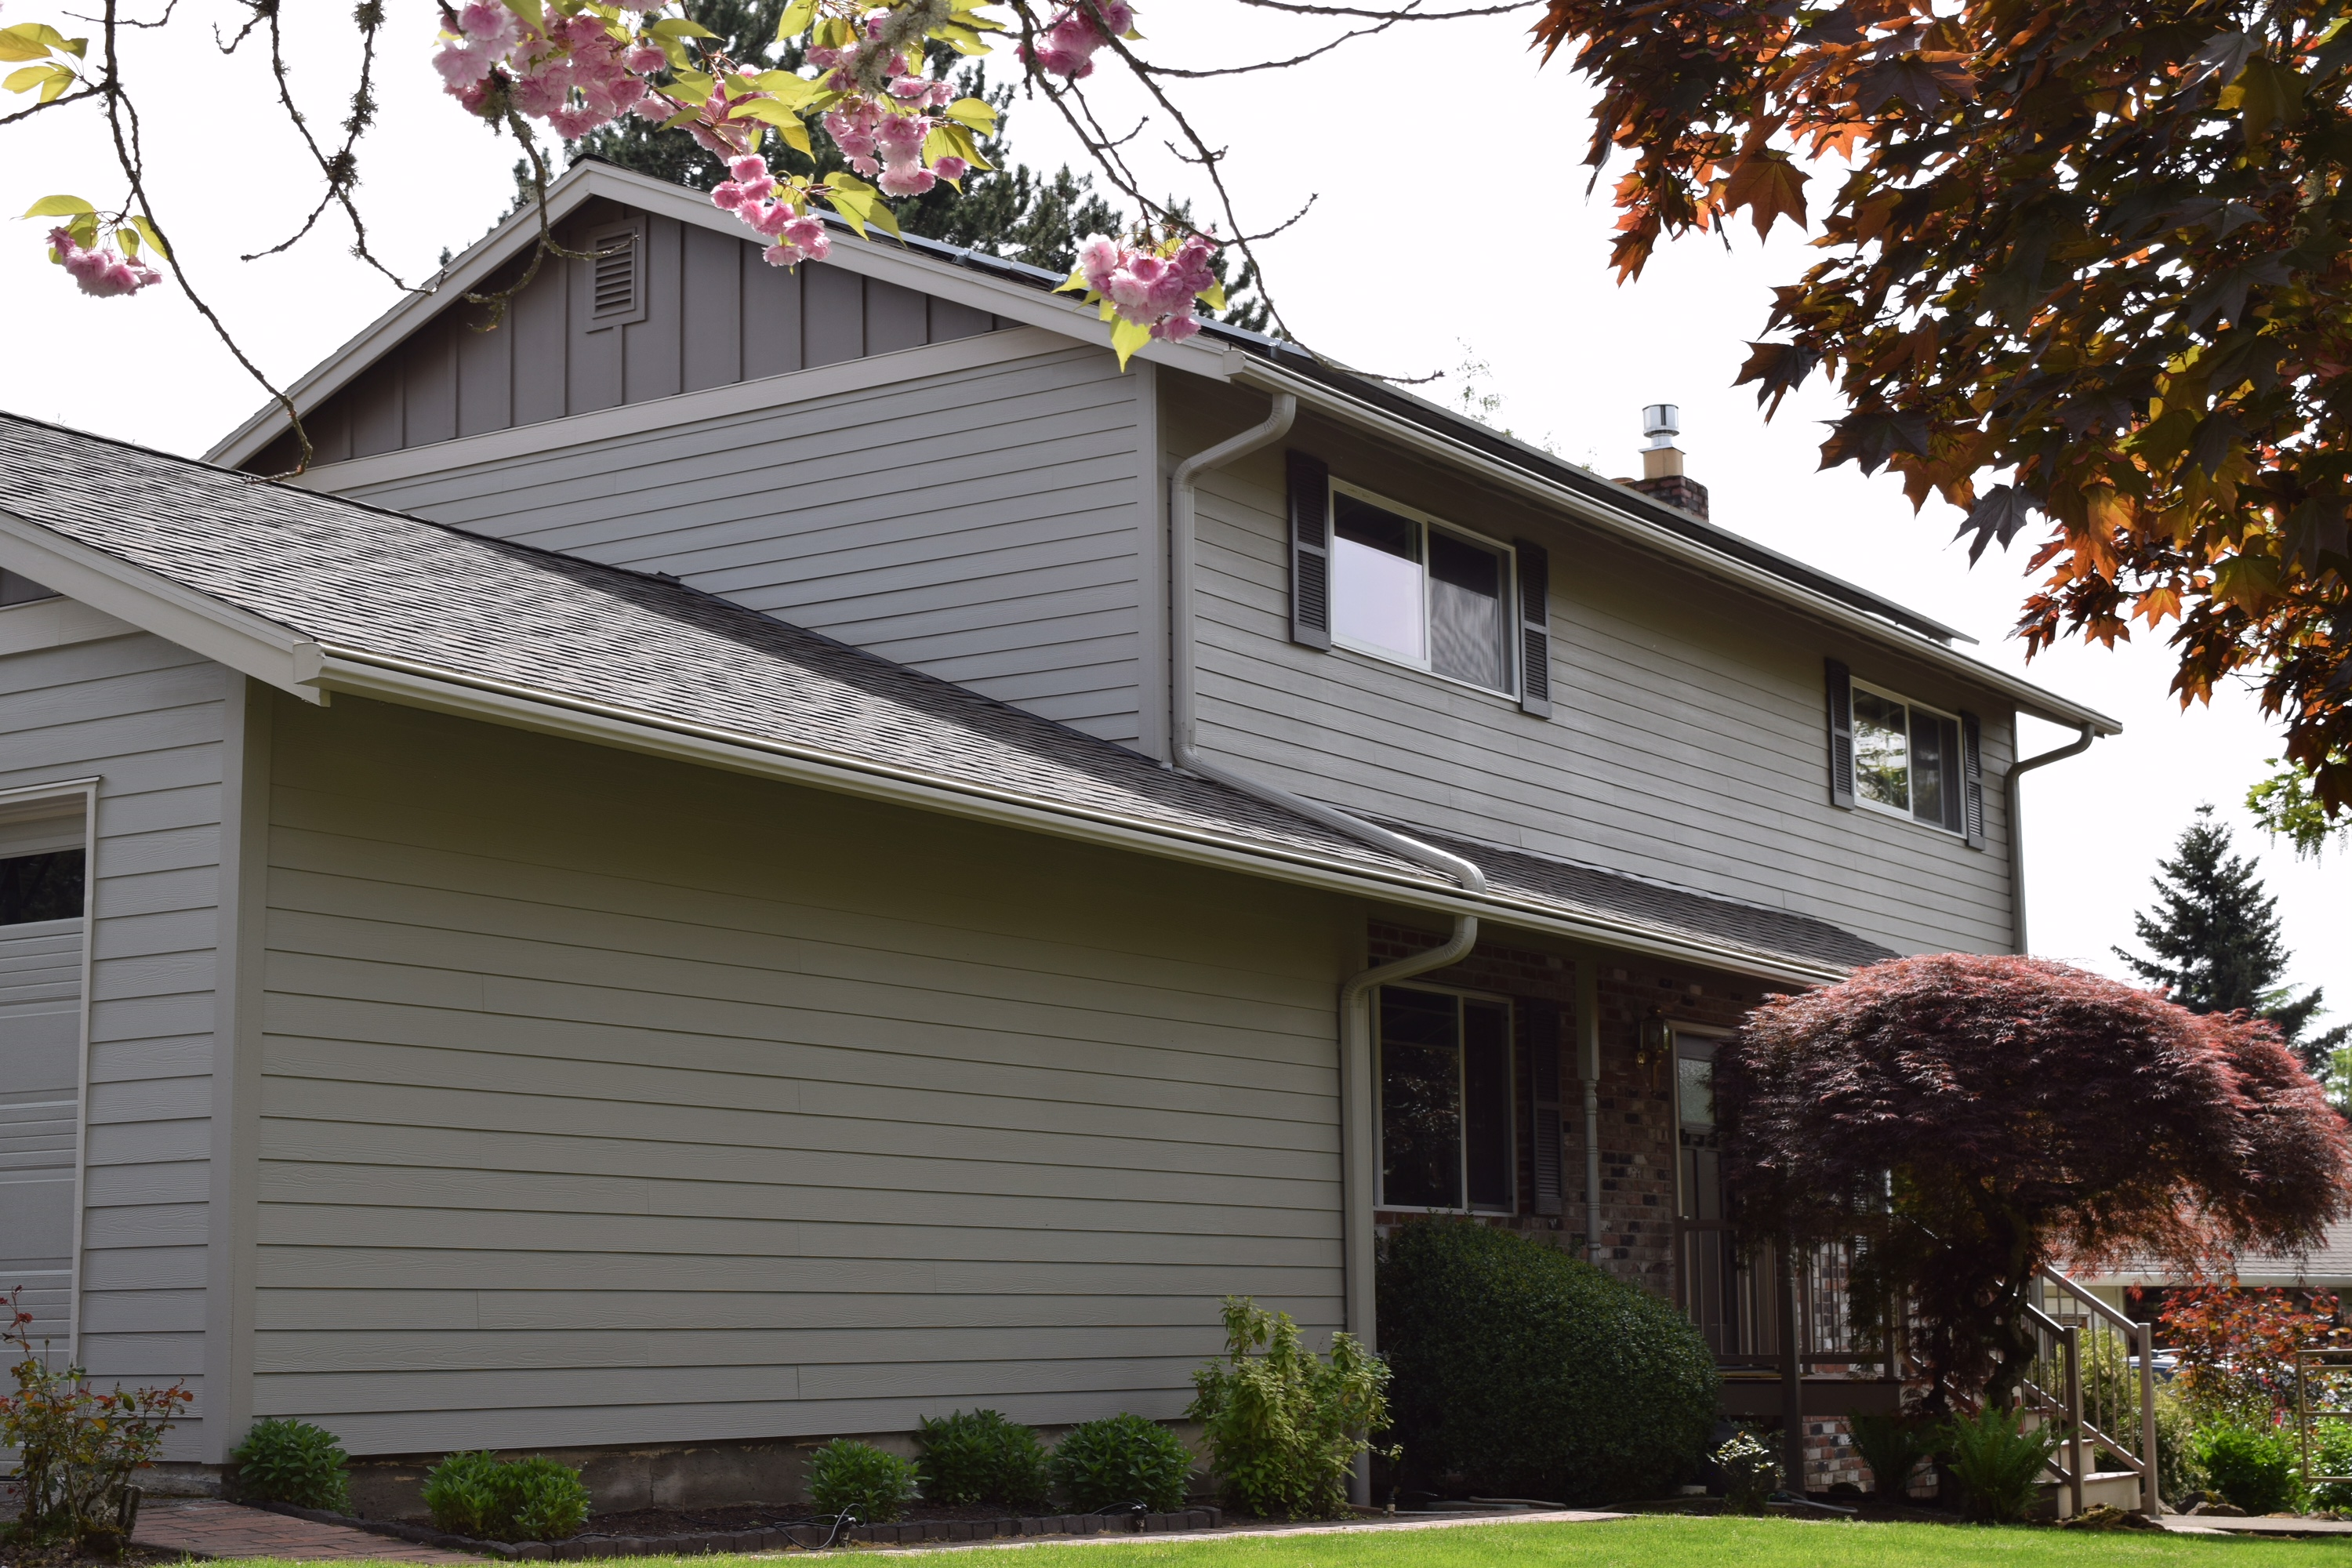 New siding on a home in Beaverton